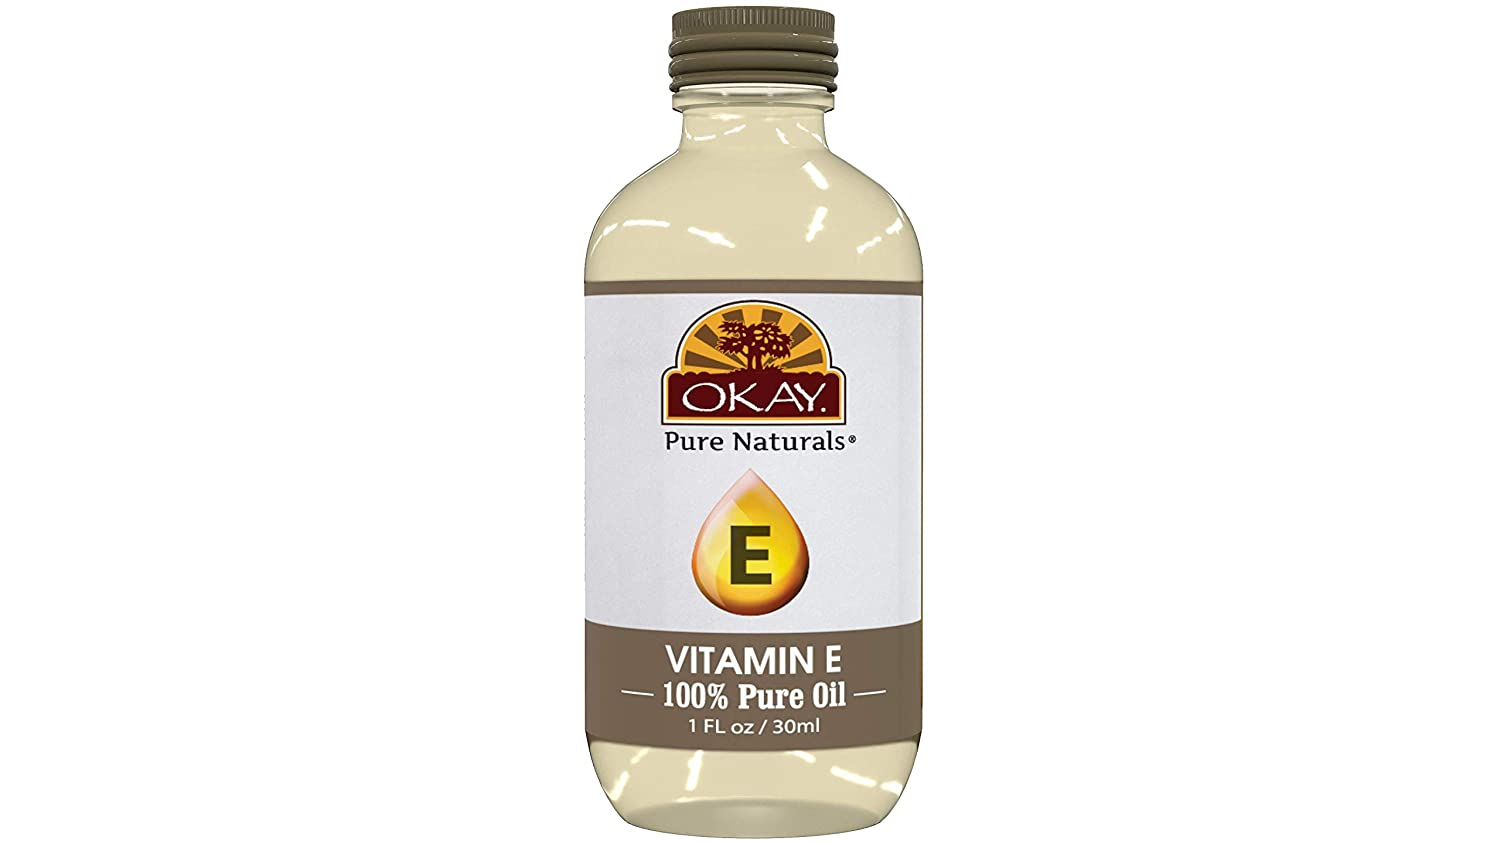 OKAY   Vitamin E Oil   For All Hair Textures & Skin Types   Repair & Grow Strong Healthy Hair - Moisturize & Revitalize Skin   100% Pure   All Natural   1 Oz